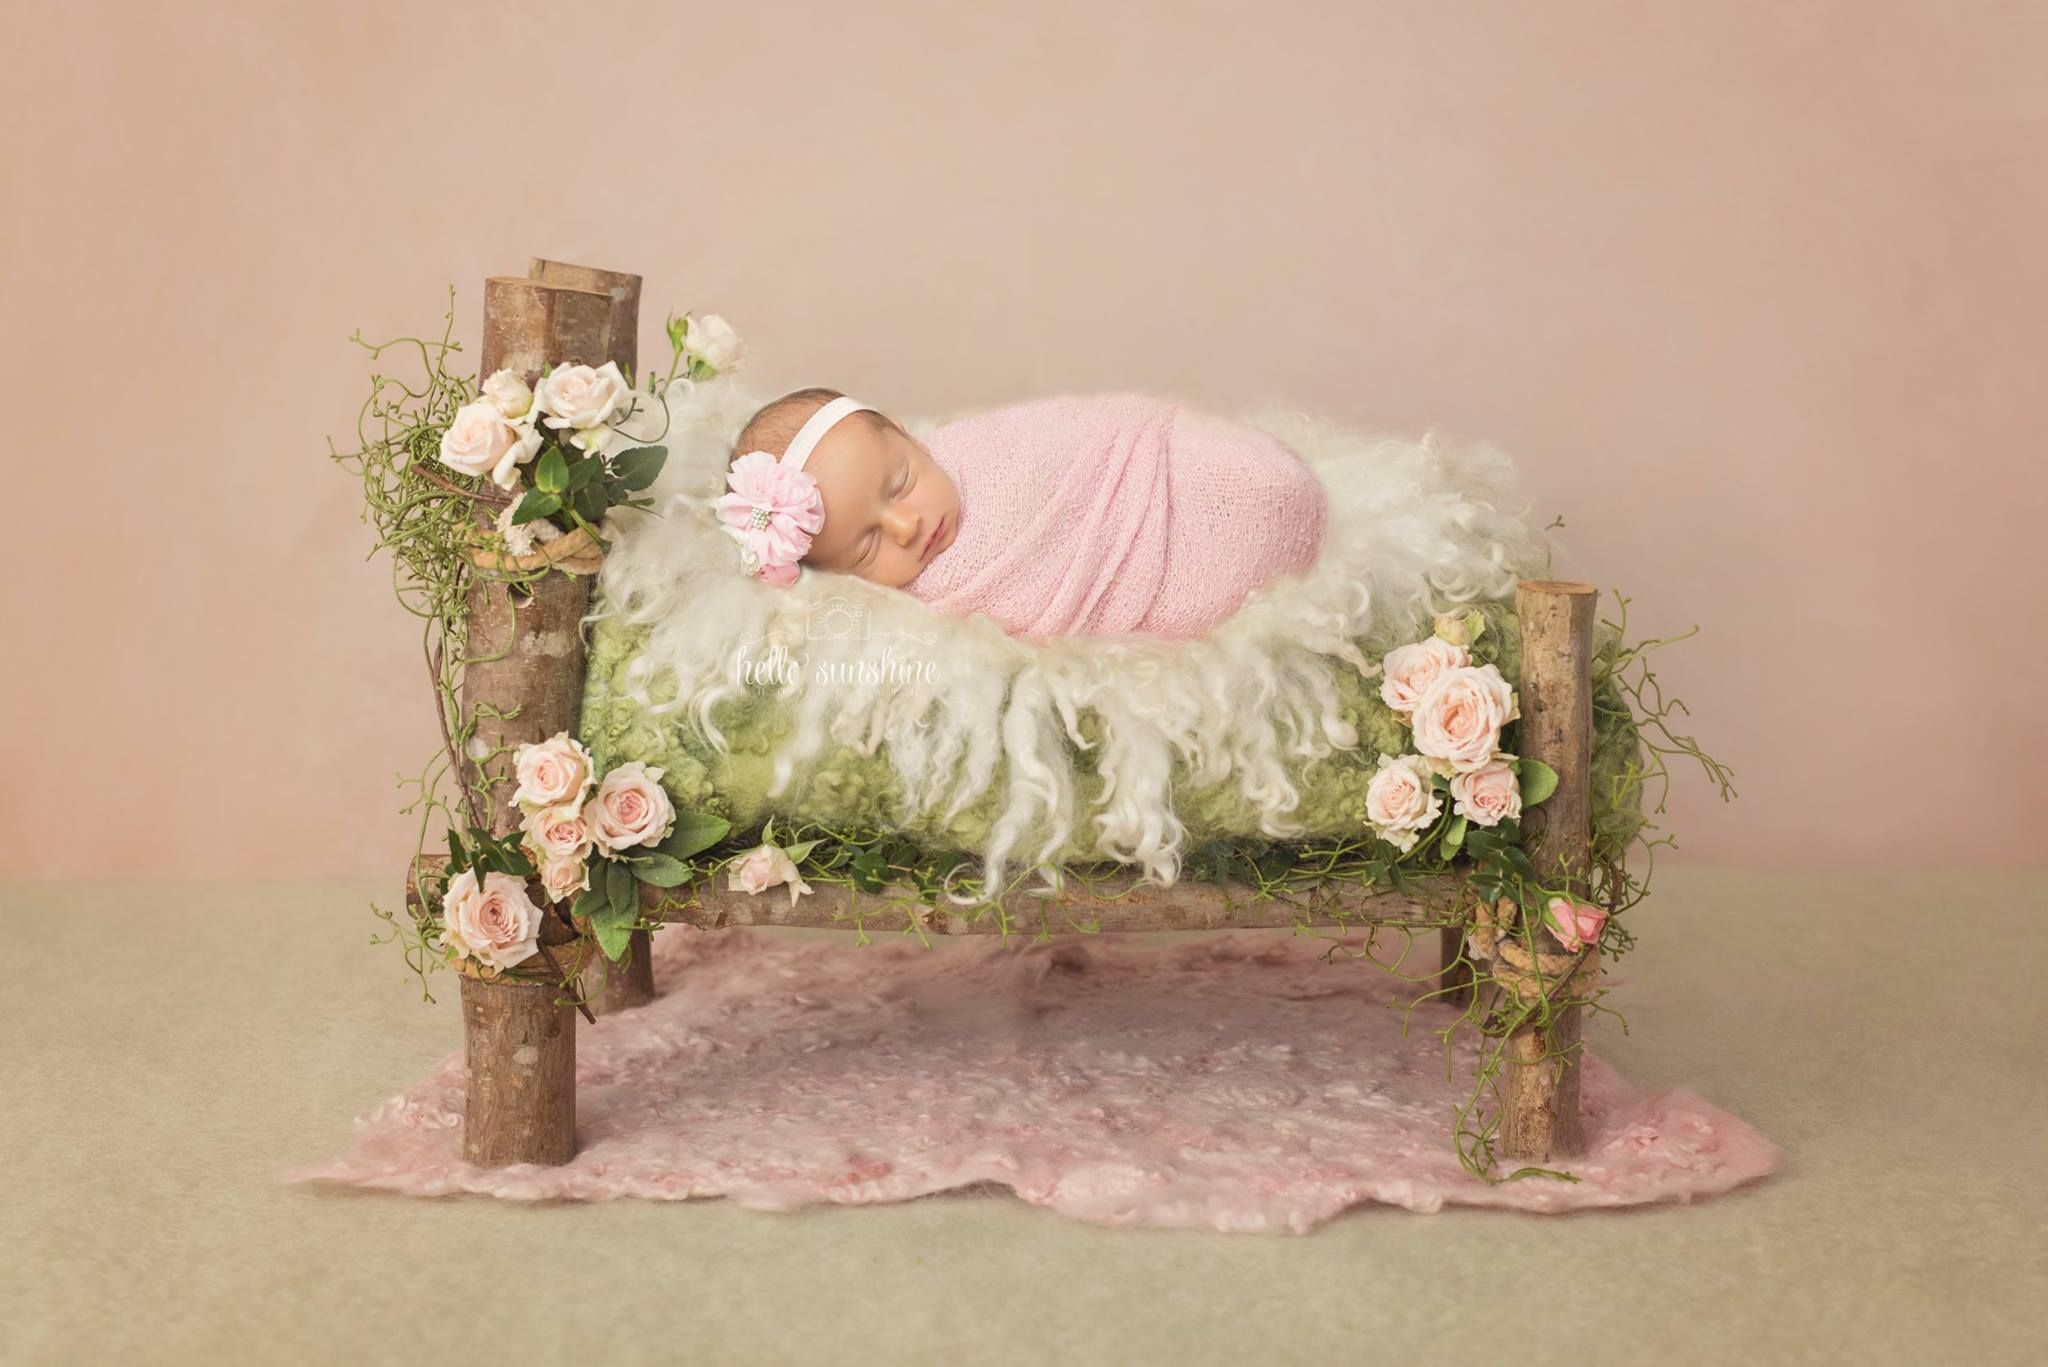 3 luisa dunn digital backdrops and templates for newborn photographers